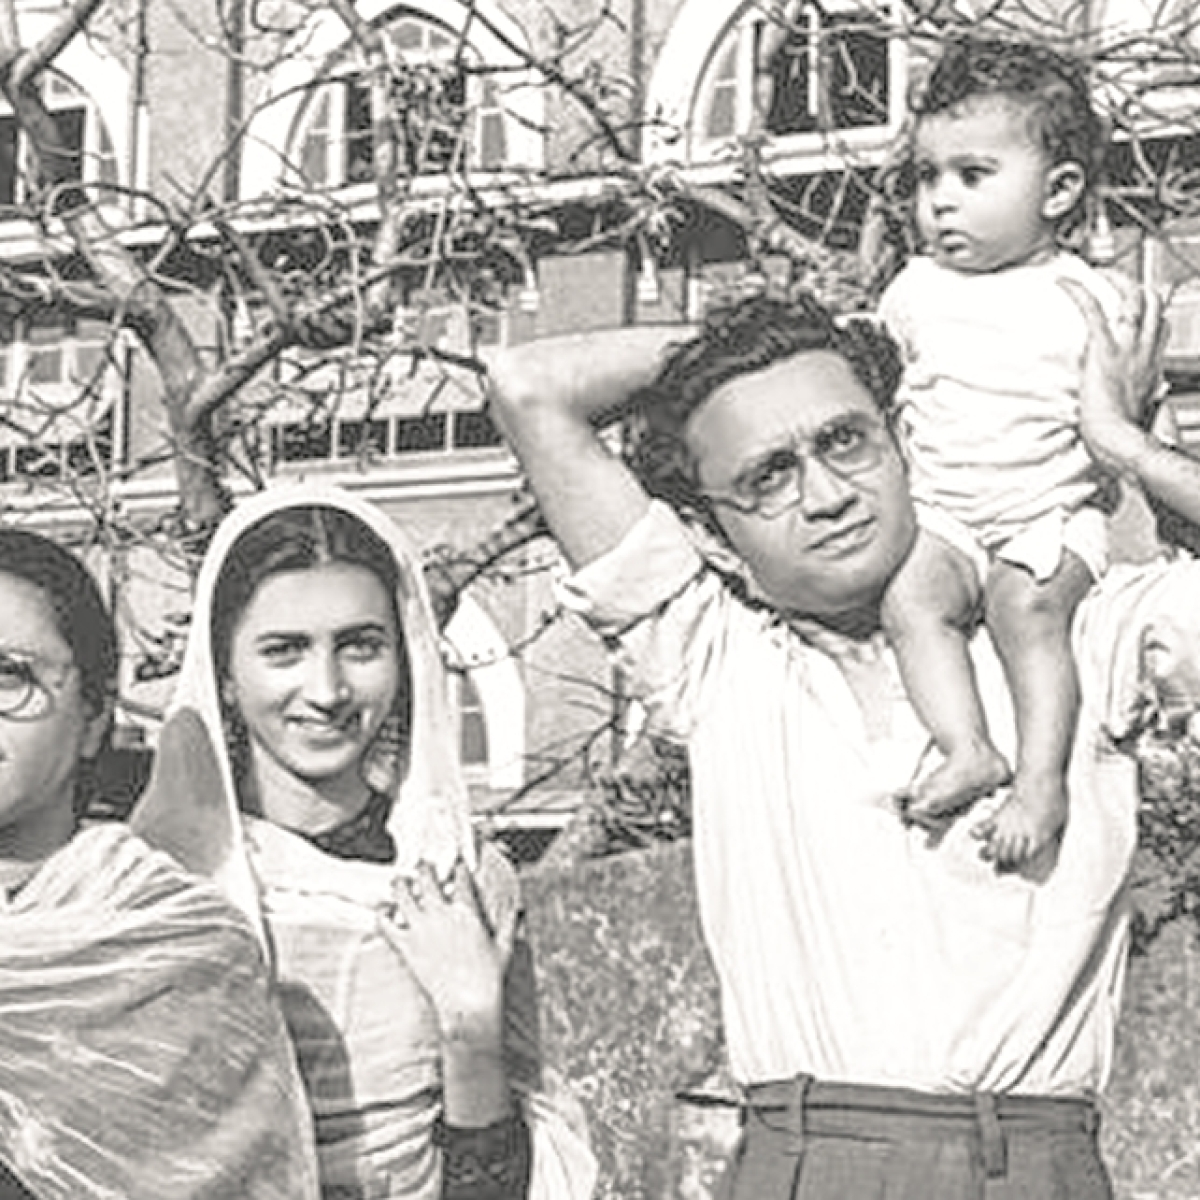 Life on the edge: Manto in these turbulent times